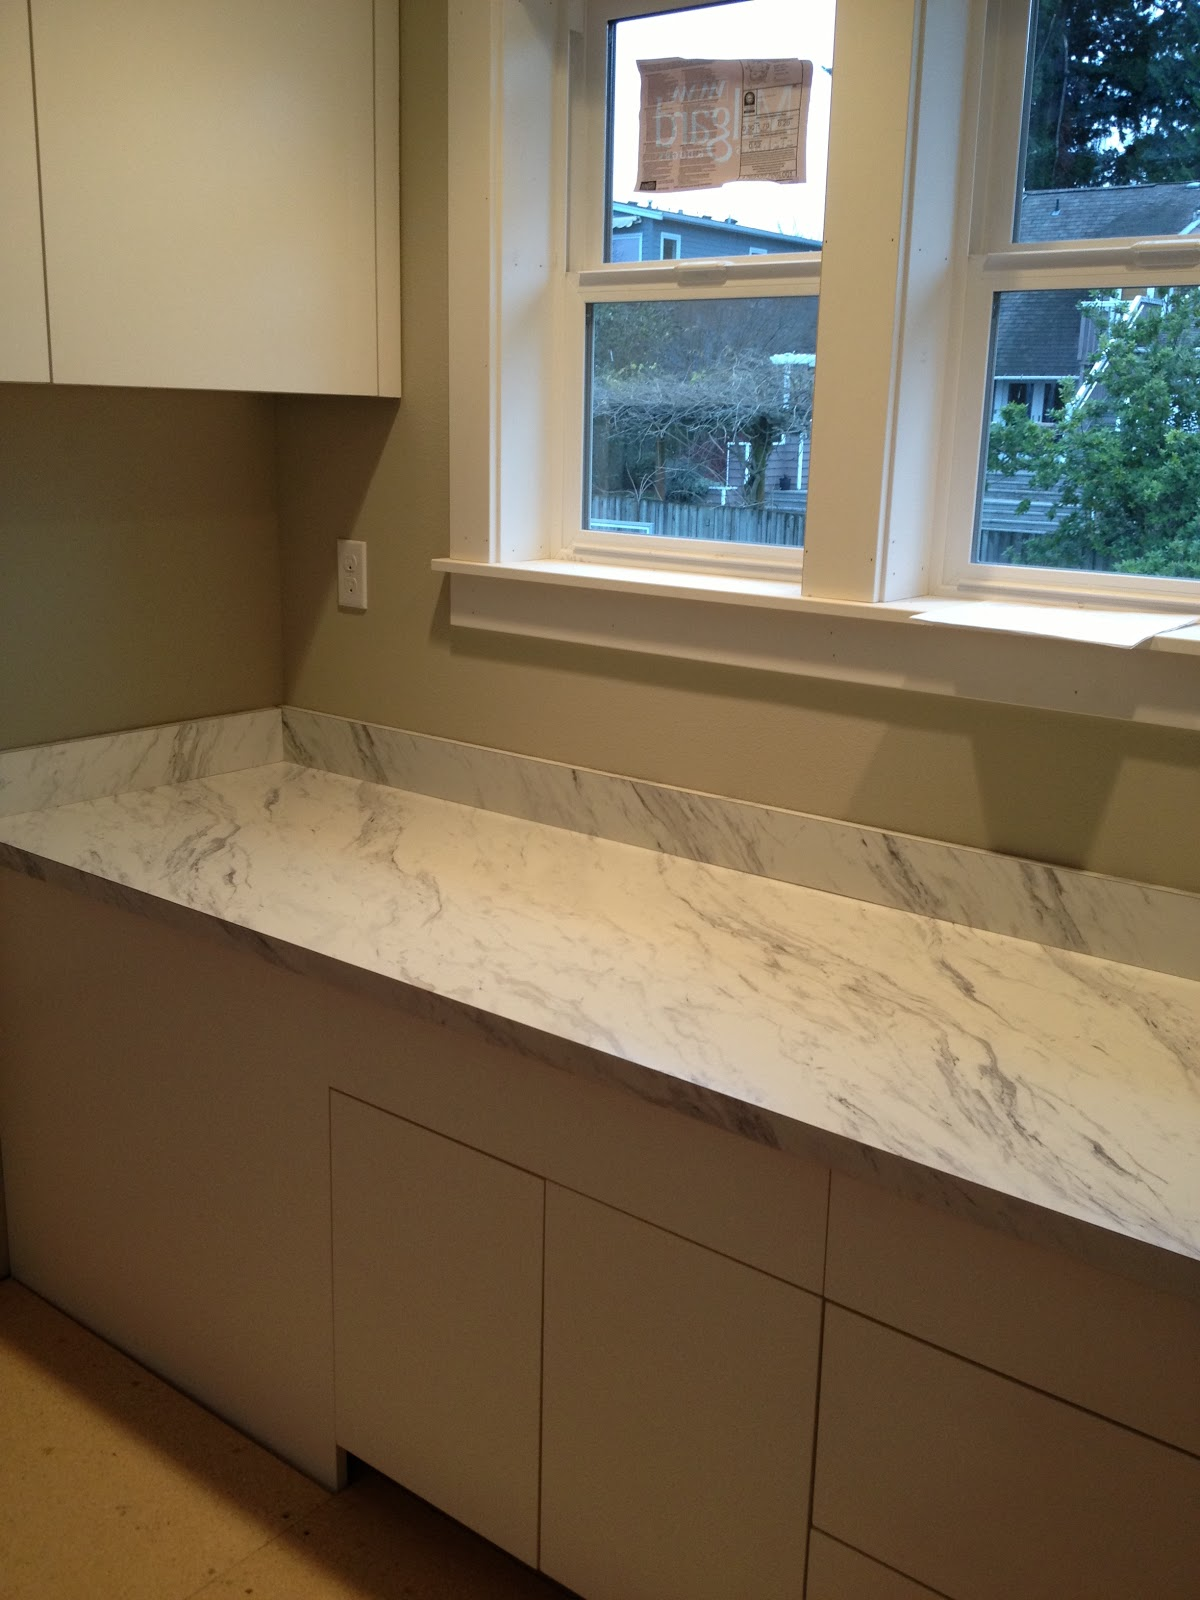 Calcutta Marble Laminate Countertop Building Our Dream Home From The Ground Up Progress